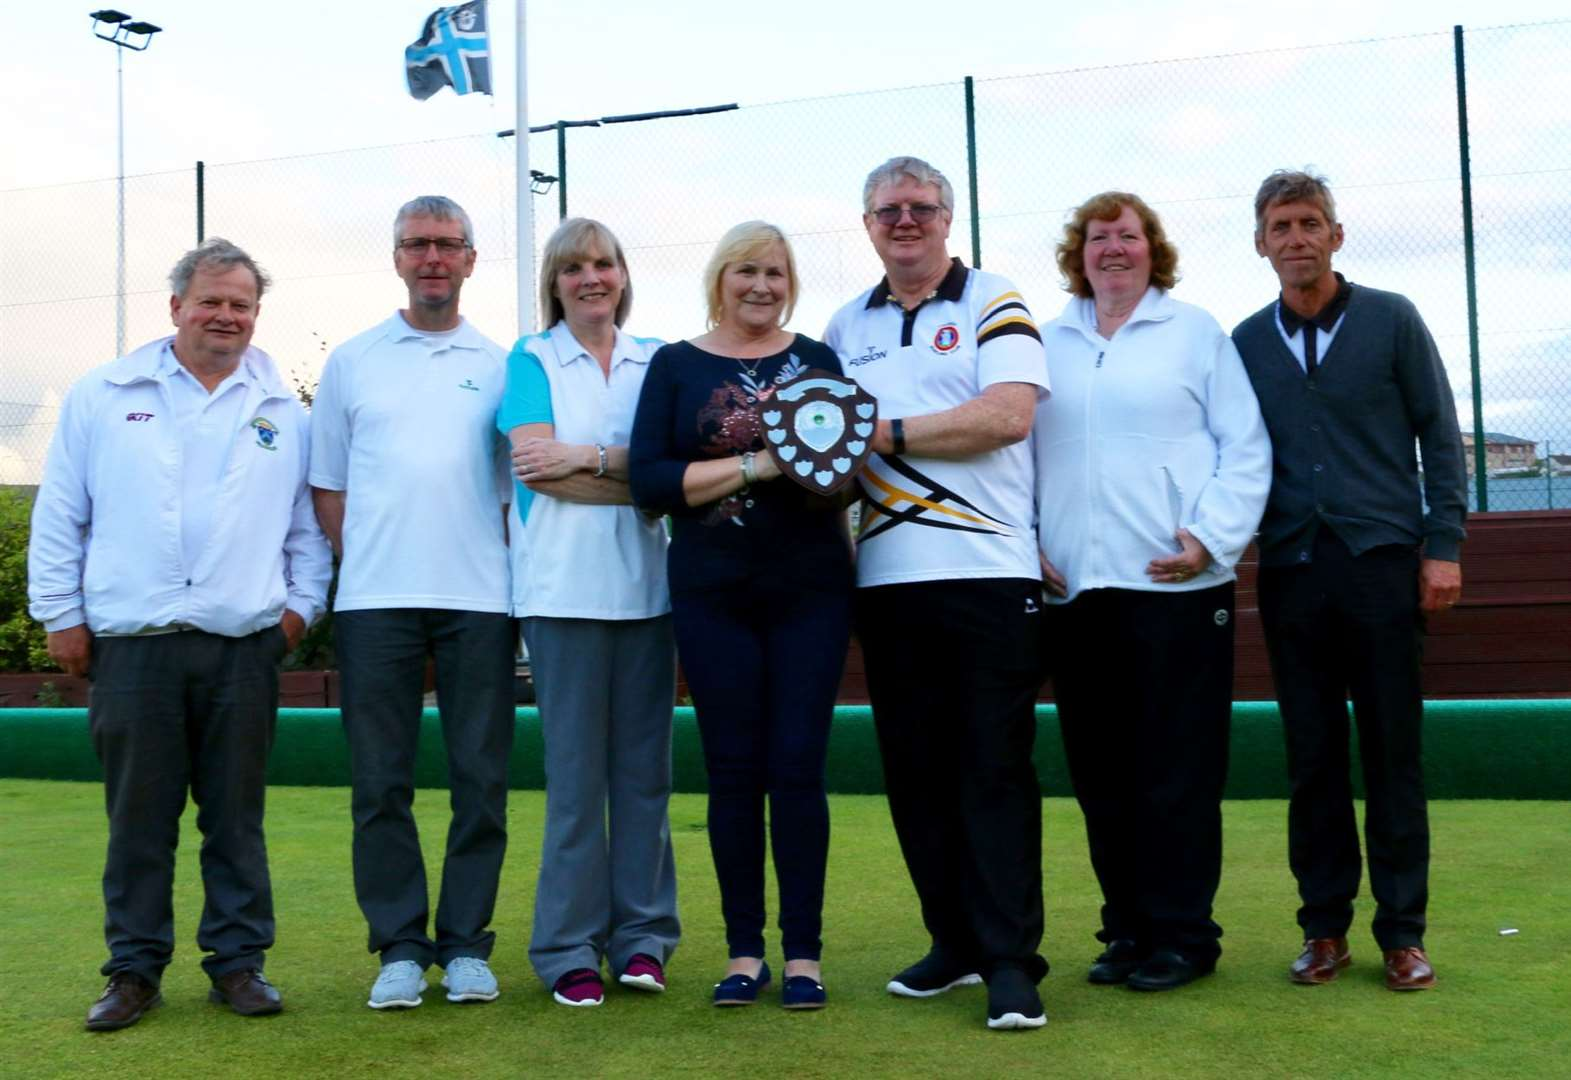 Douglas's final bowl secures over-50s' triples victory